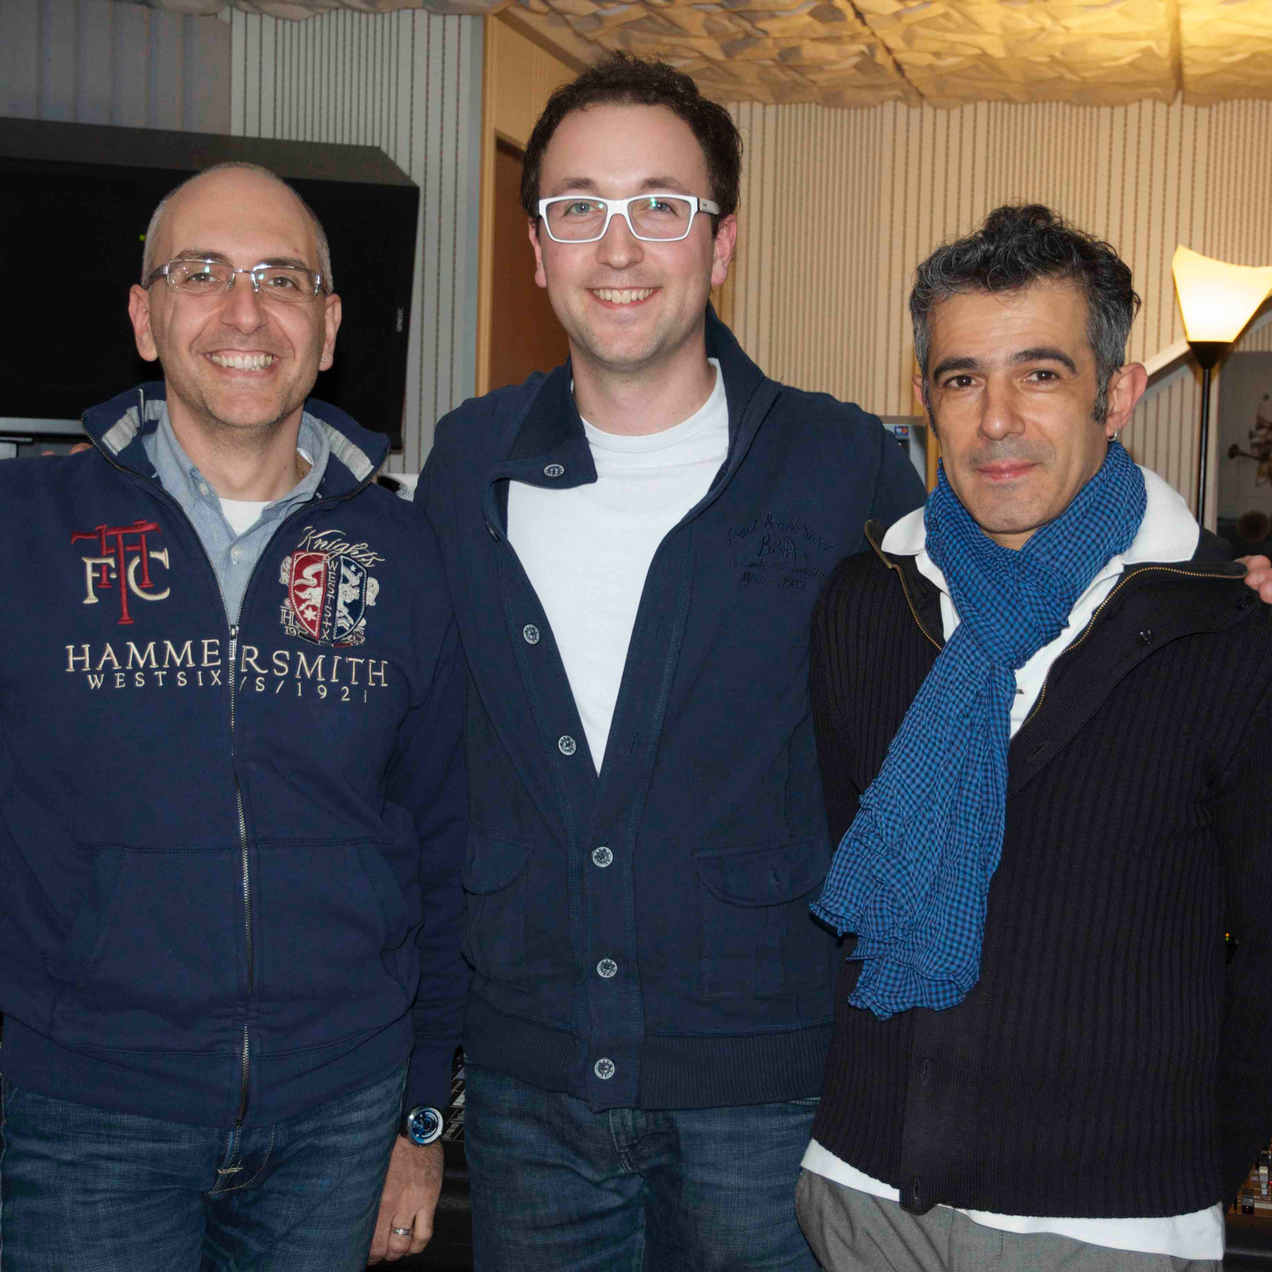 With Stefano Amerio and Paolo Fresu